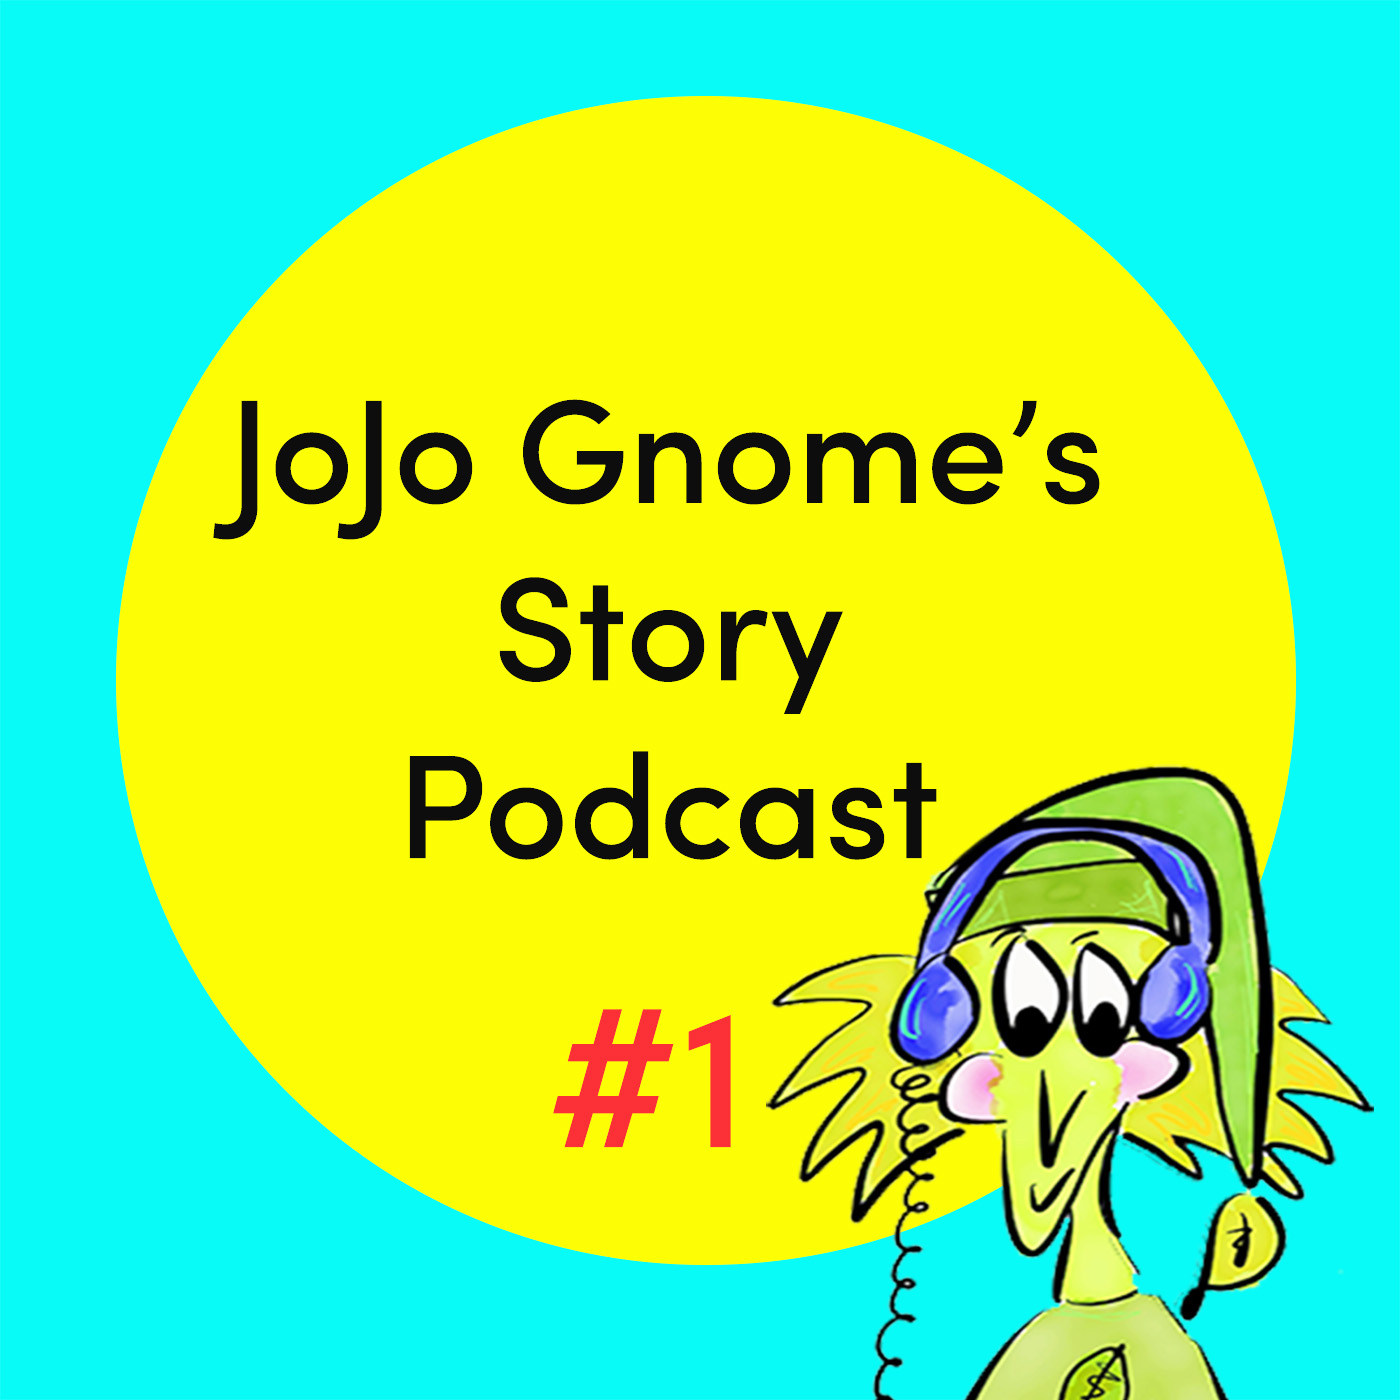 Launched! JoJo Gnome's Story Podcast | JoJoGnome